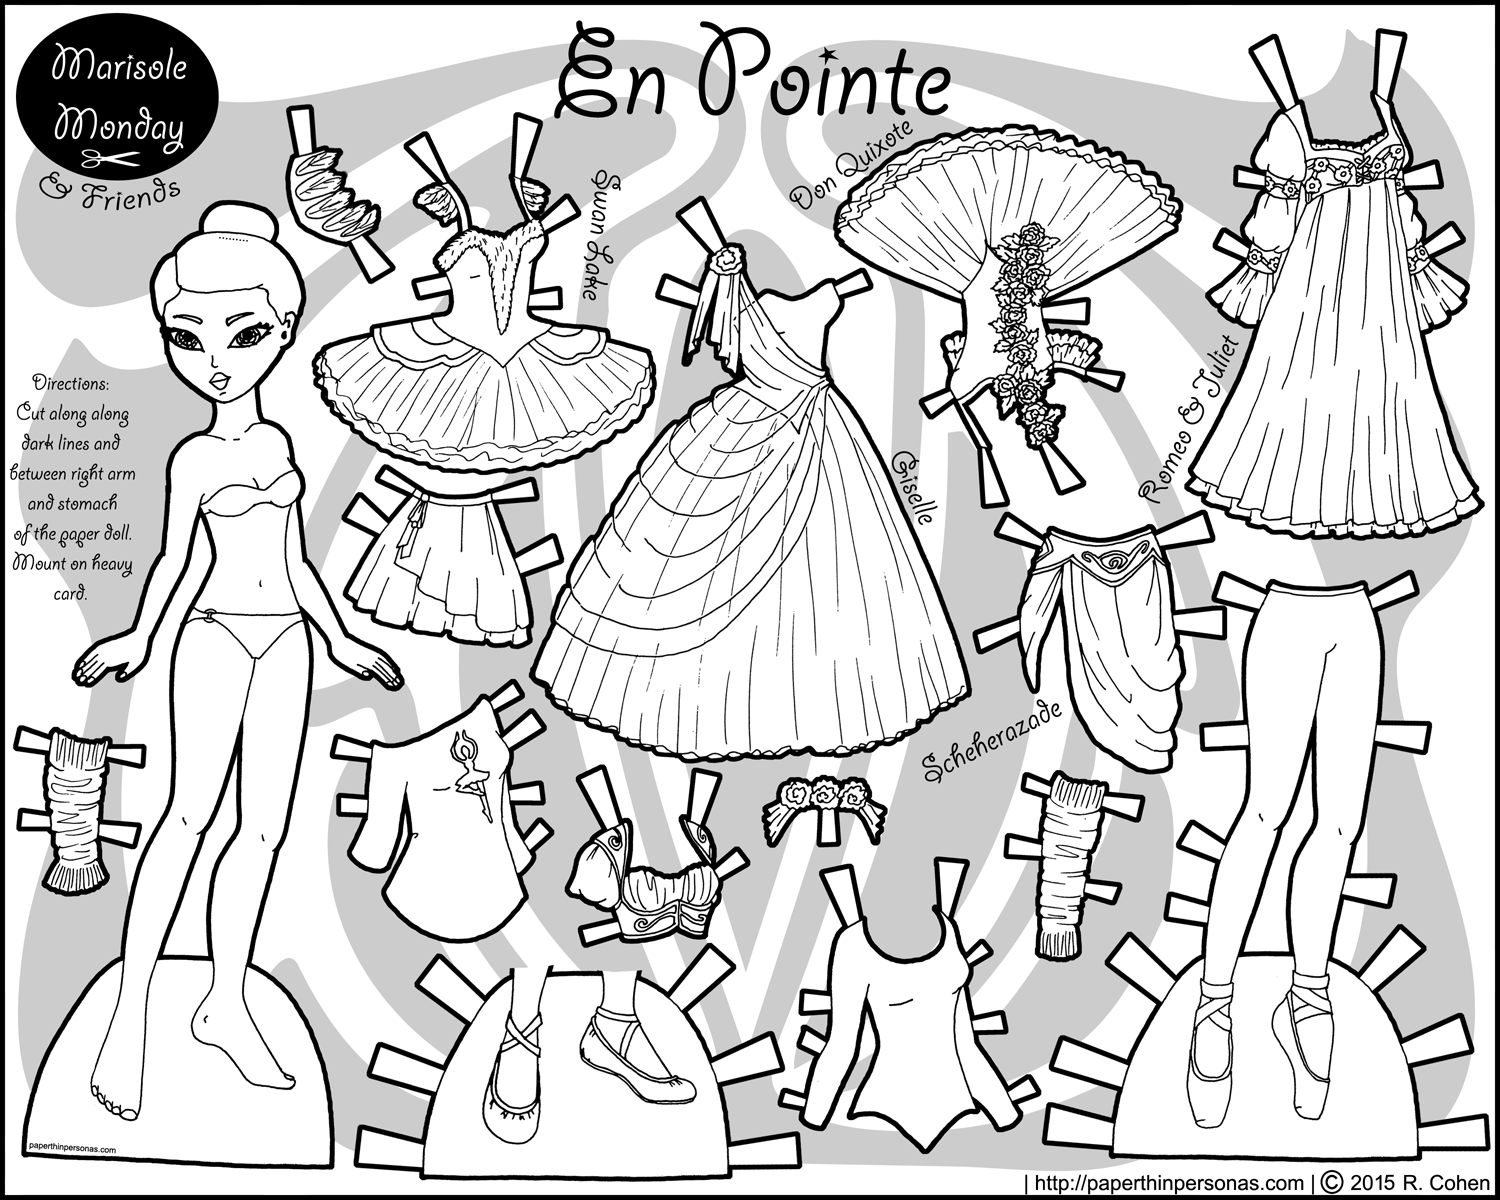 A black and white printable Asian ballerina paper doll with costumes from the ballets Gisselle, Scheherazade, Swan Lake, Romeo & Juliet, and Don Quixote.